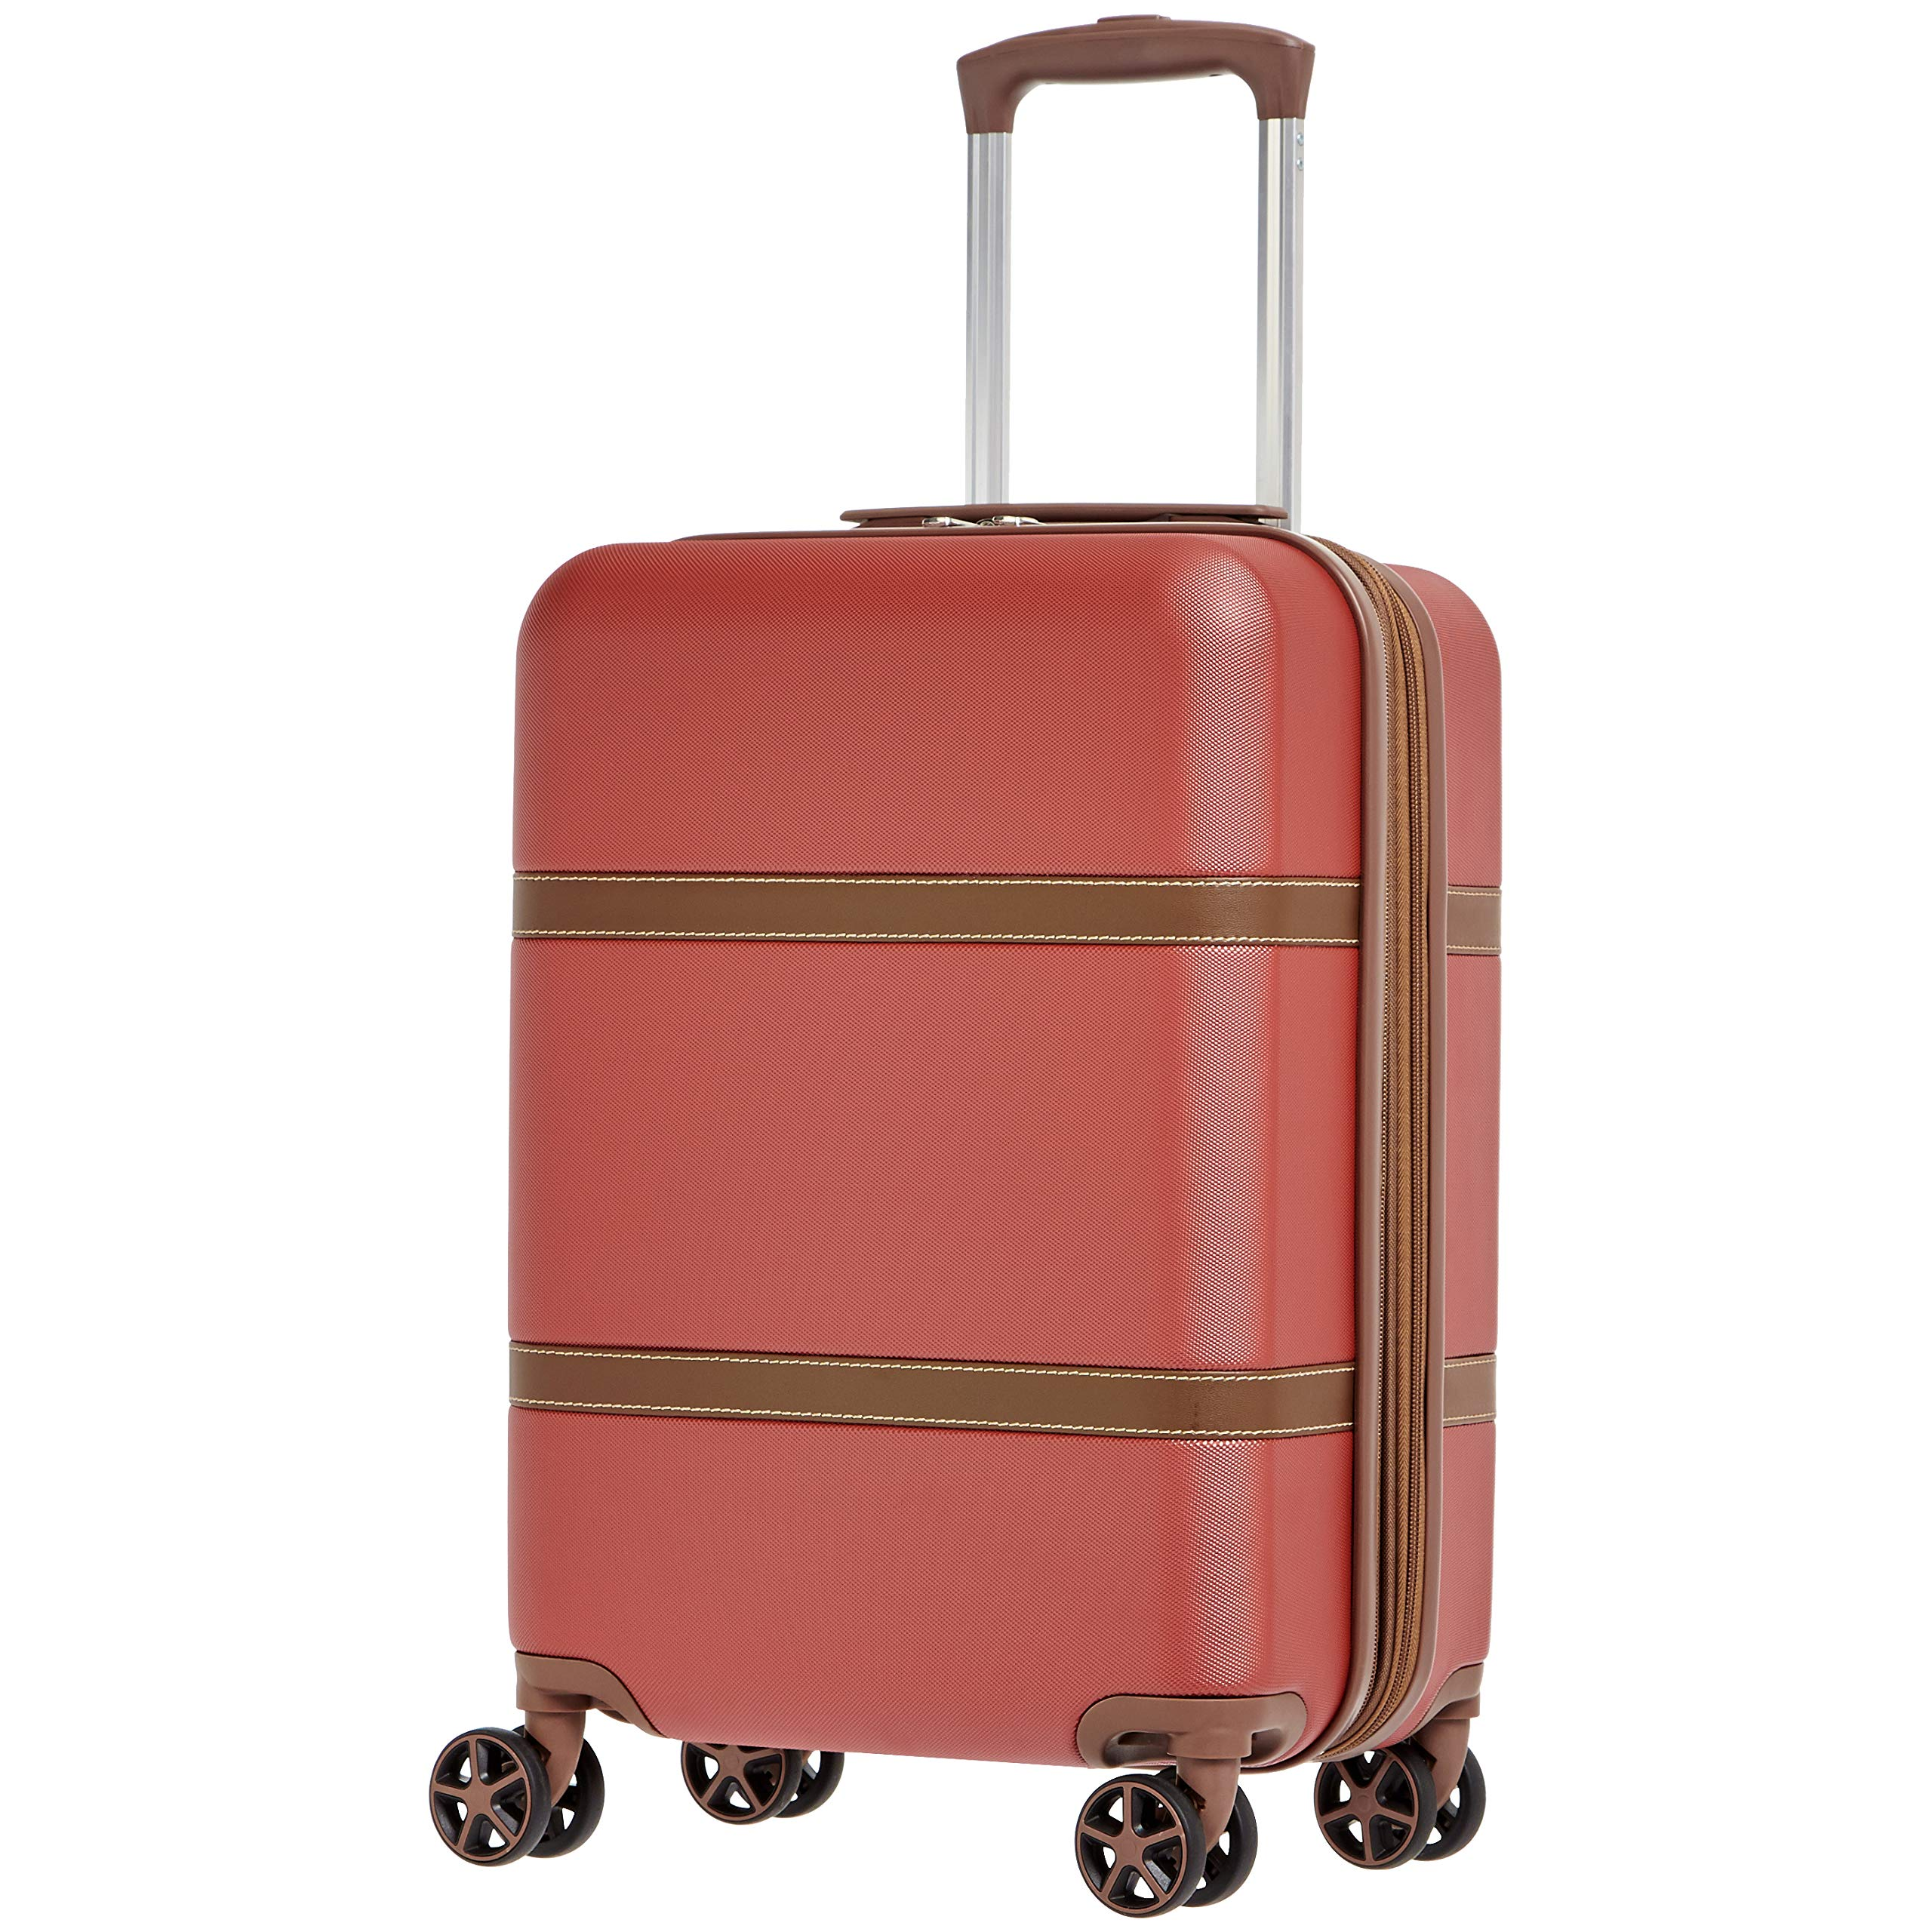 AmazonBasics Vienna Expandable Carry-On Luggage Spinner Suitcase - 20 Inch, Red by AmazonBasics